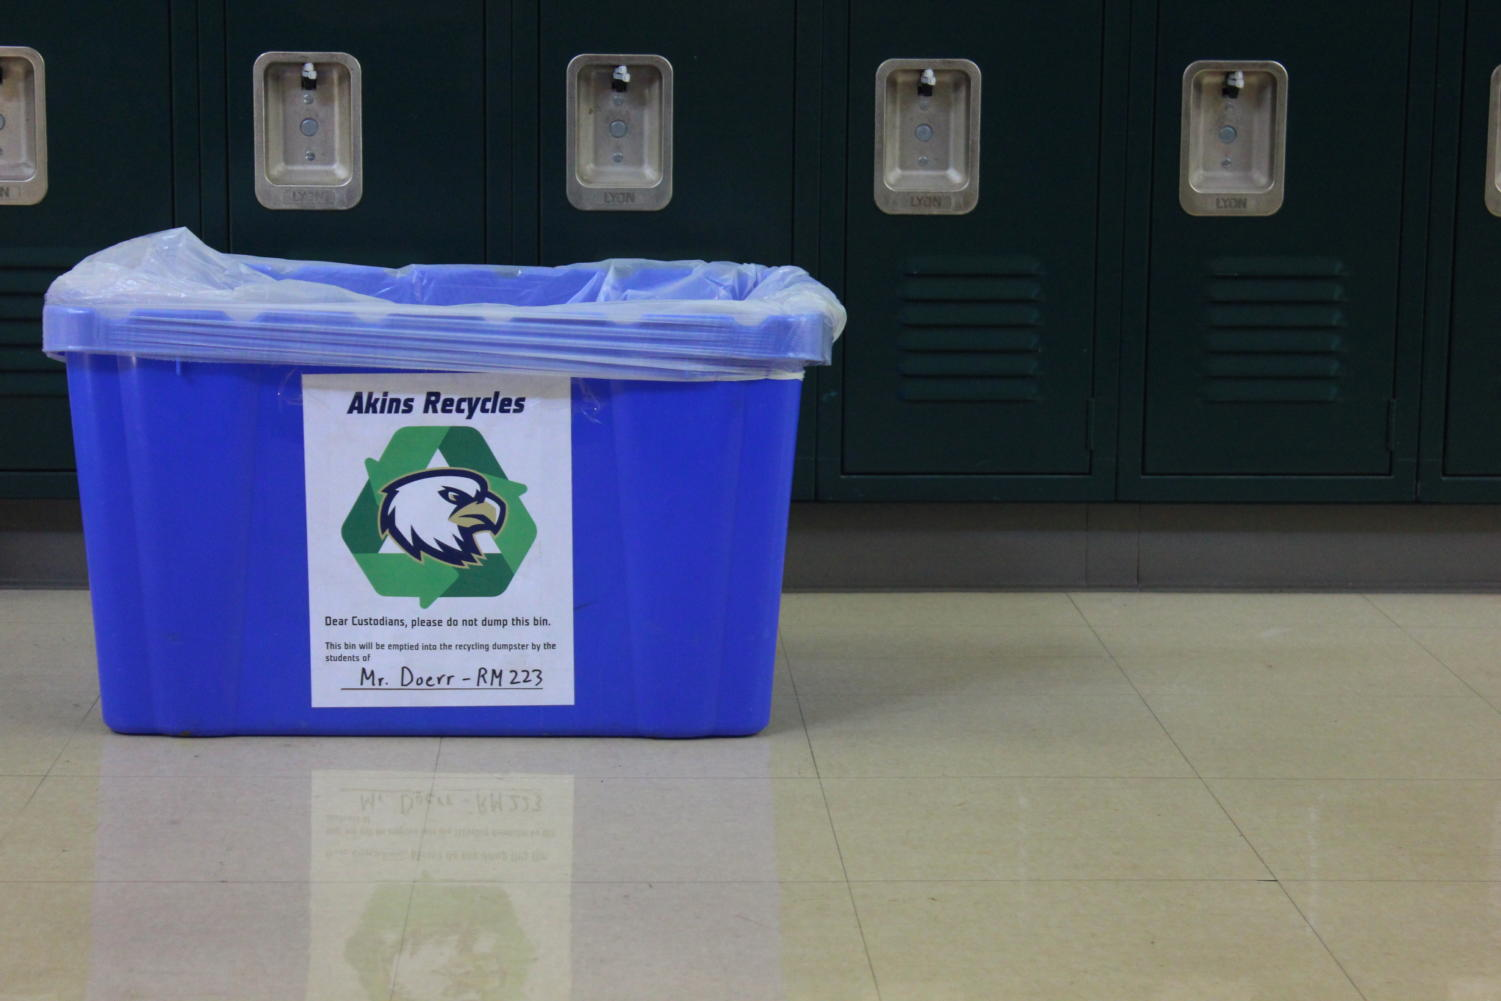 Newspaper advisor David Doerr's recycling bin which has a sign placing the responsibility to recycle on students